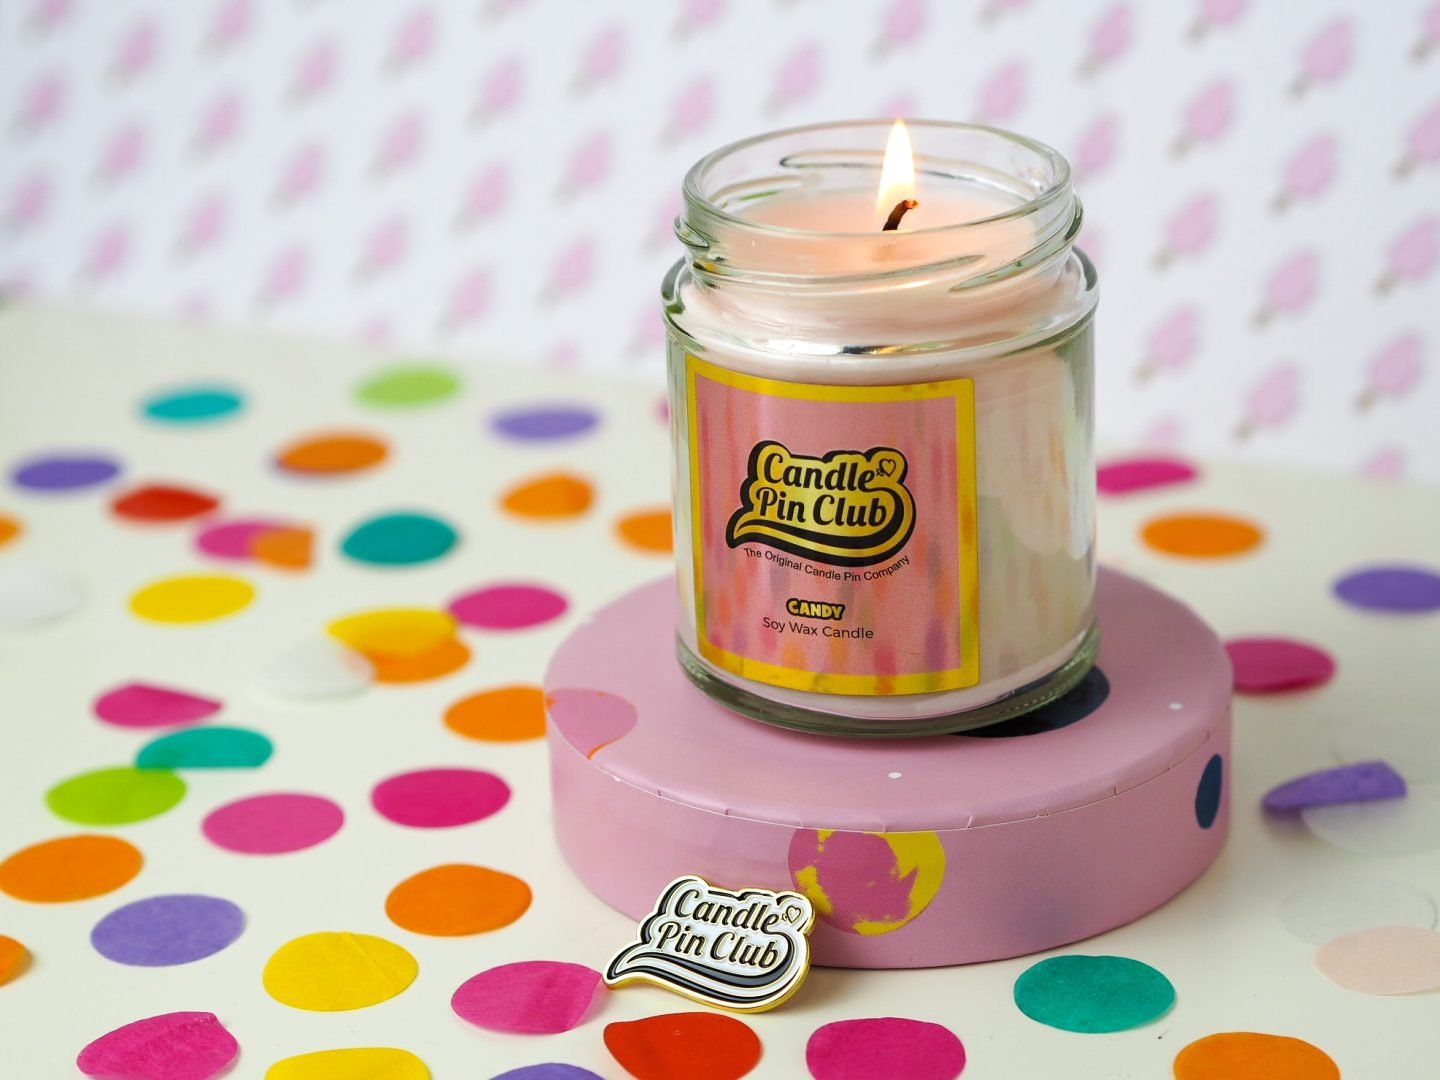 candle pin club candy candle burning